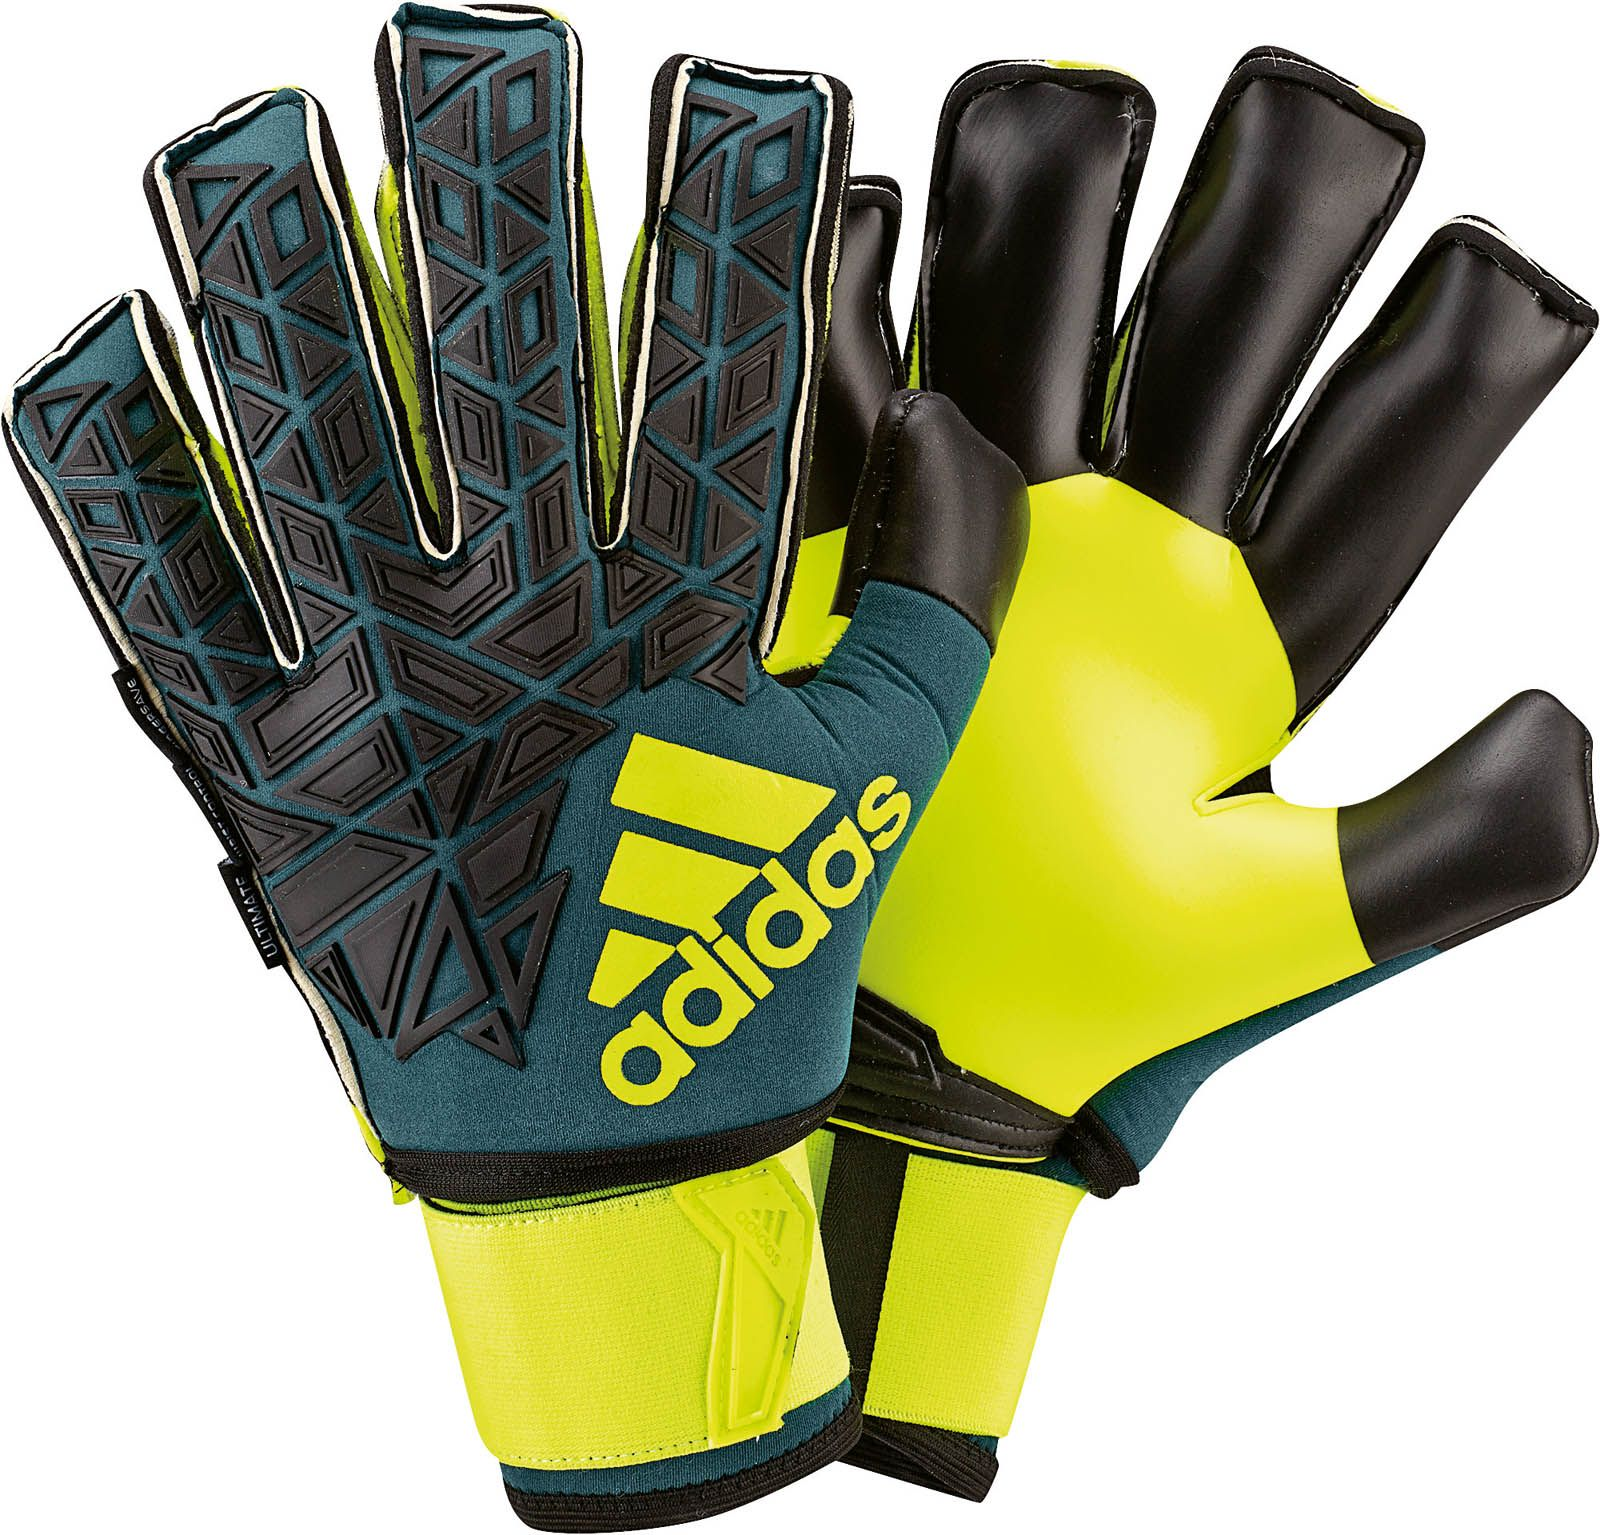 The Adidas Ace Trans Ultimate are Adidas  all-new goalkeeper glove for the  2016-17 season e65cbfe715